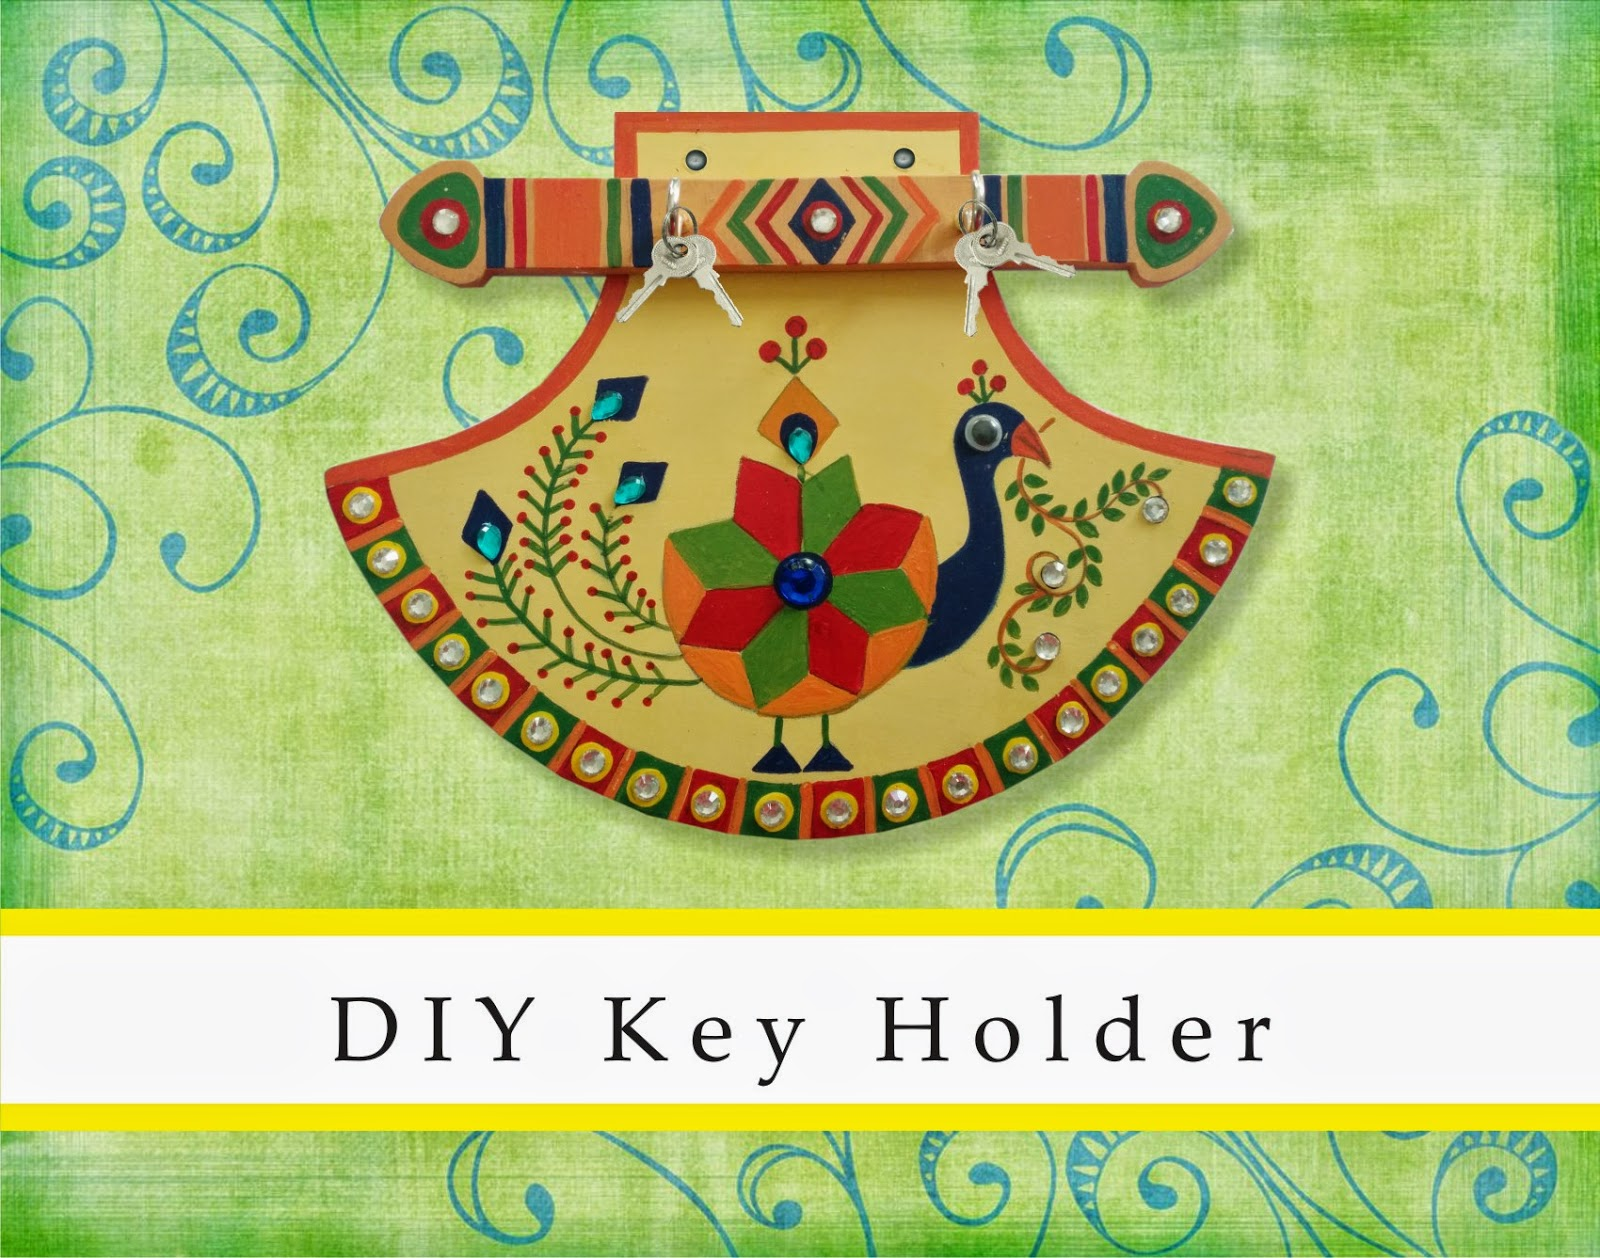 Fantastic do it yourself craft kits by the jaipur craft kit key holder kit inr rs 24500 per unit solutioingenieria Gallery